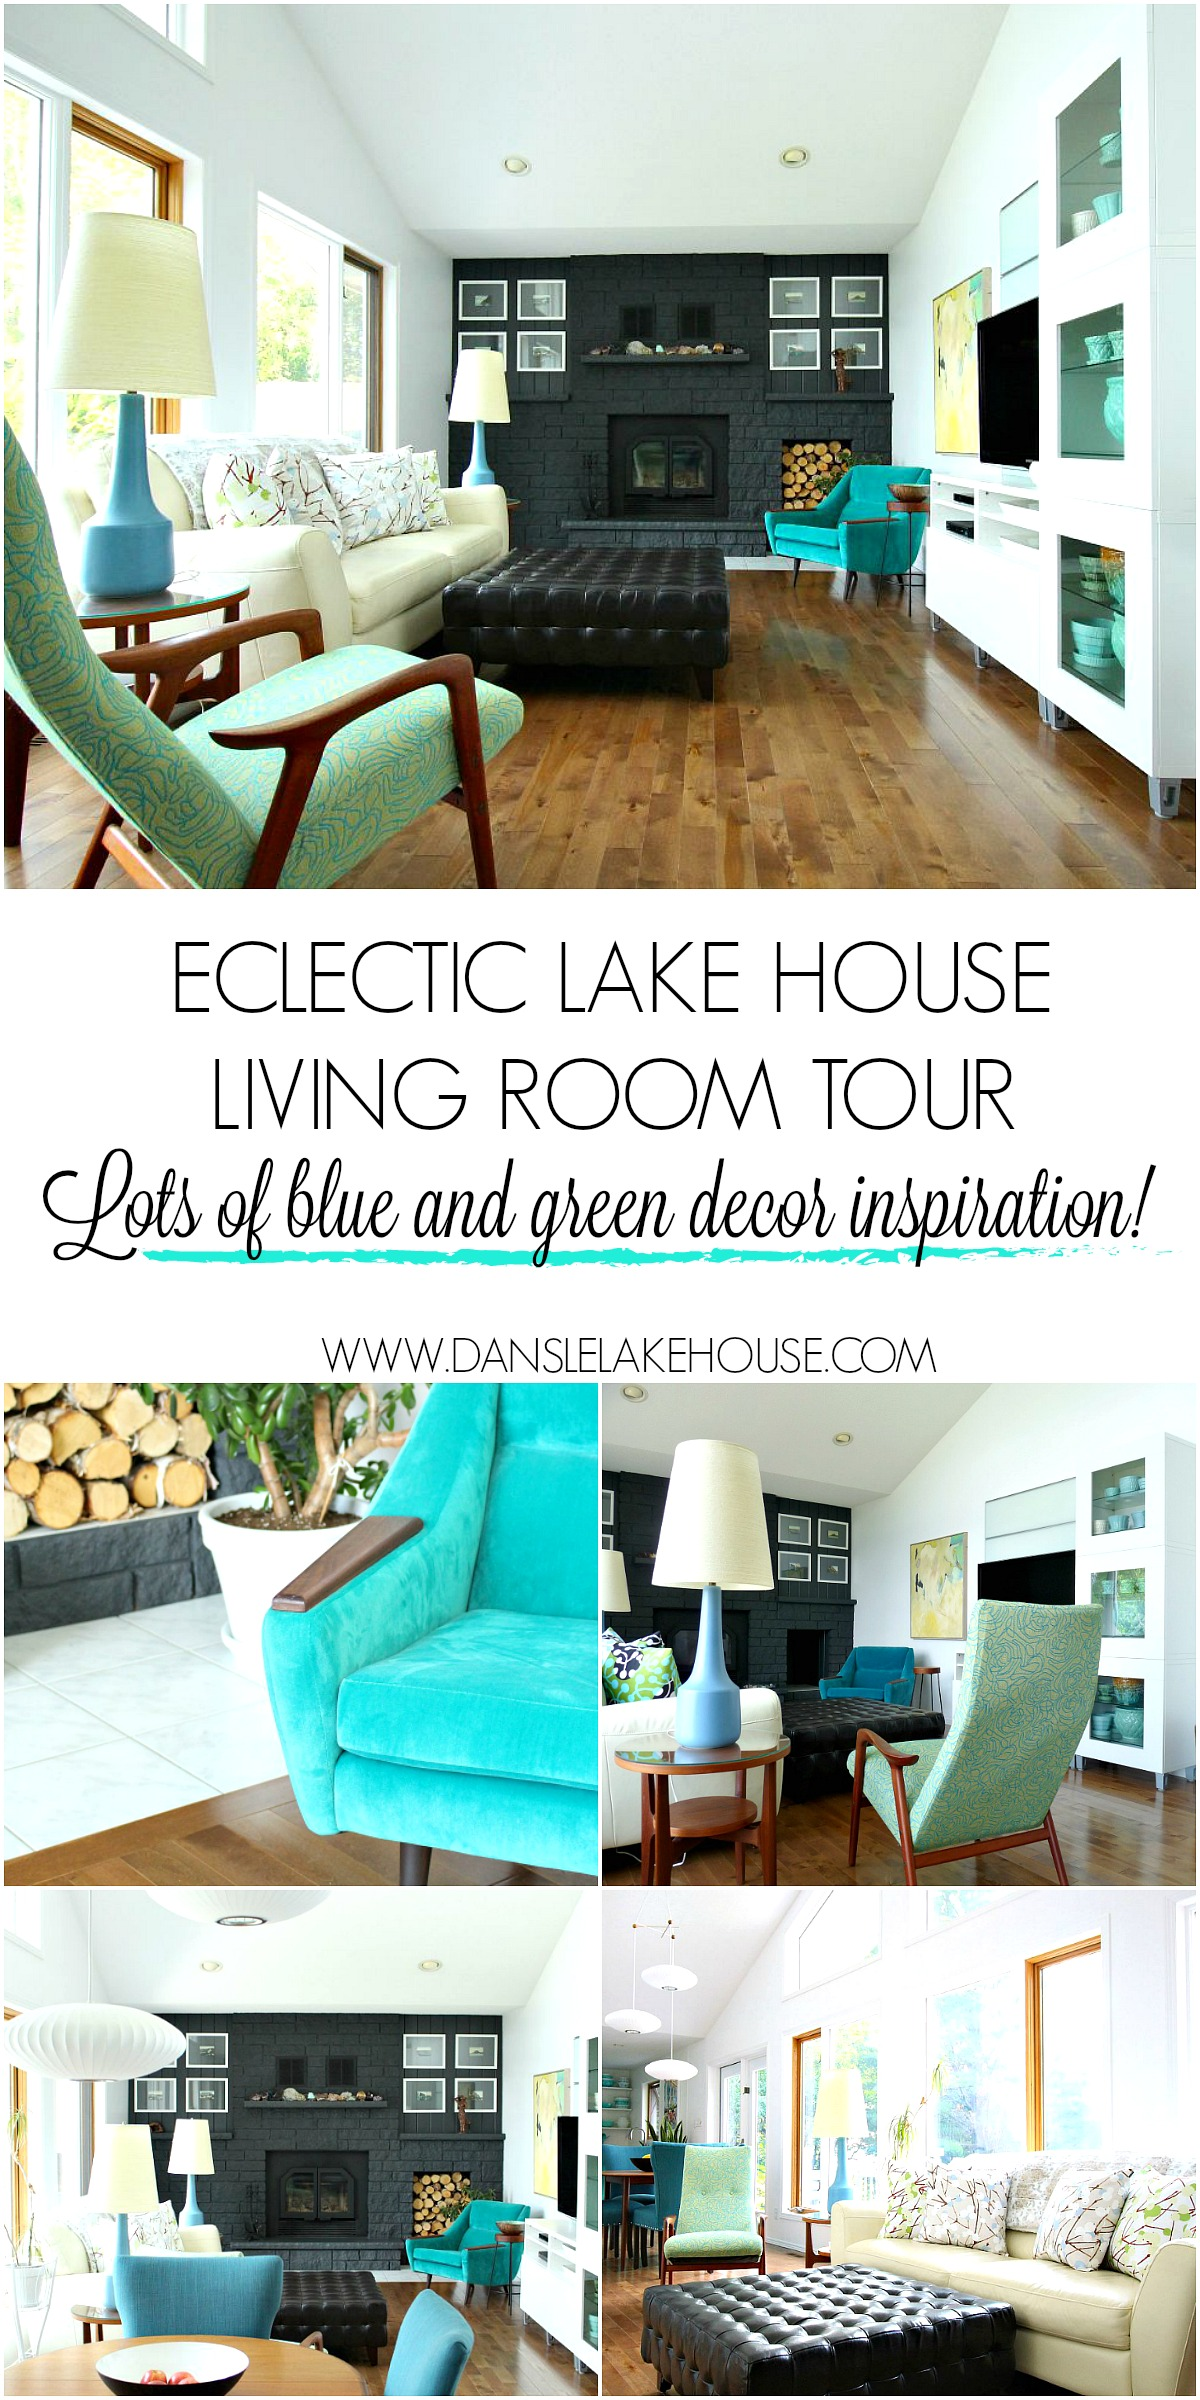 Lake house living room tour with lots of blue and green home decor inspiration. See an eclectic mix of mid-century modern, contemporary and budget-friendly furniture with lots of DIY projects hack!